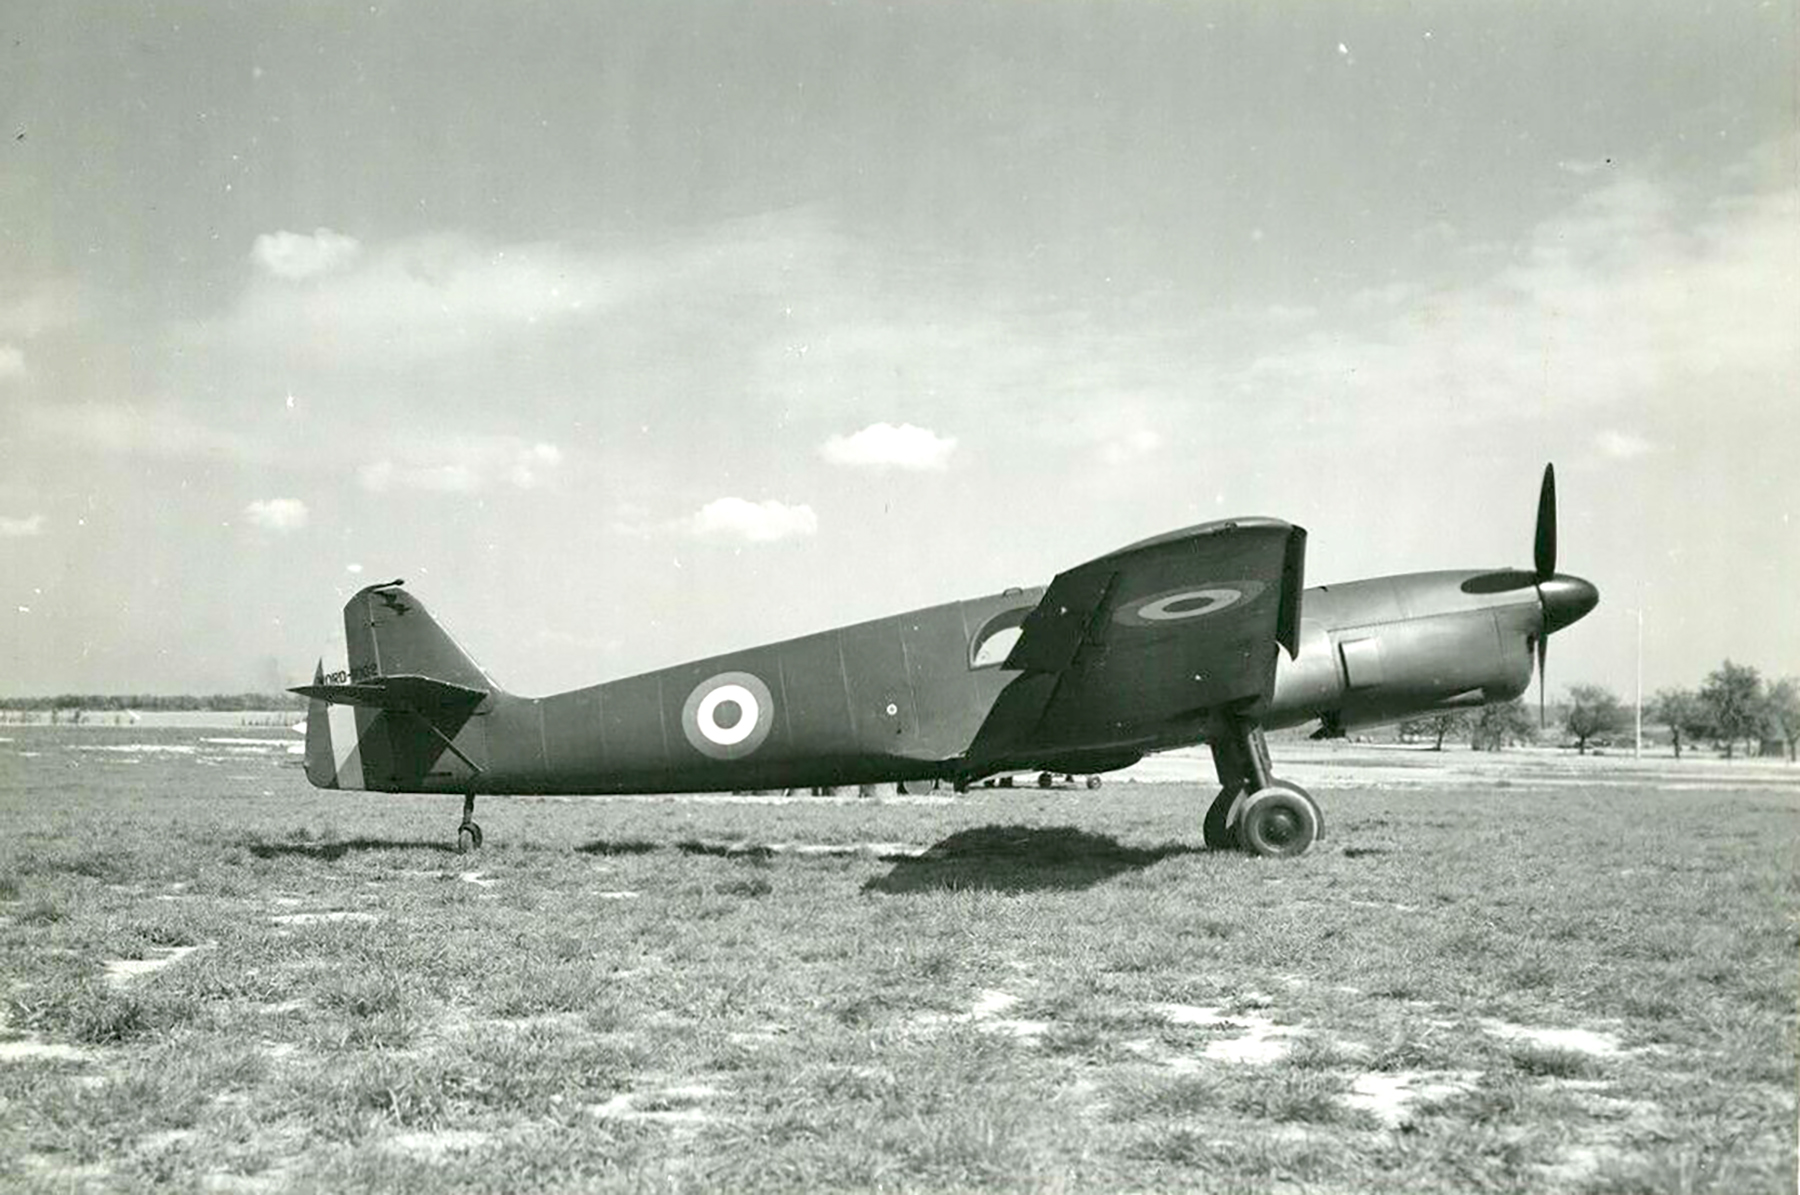 French Airforce Nord 1002 Cocarde awaits deployment France 1940 ebay 01